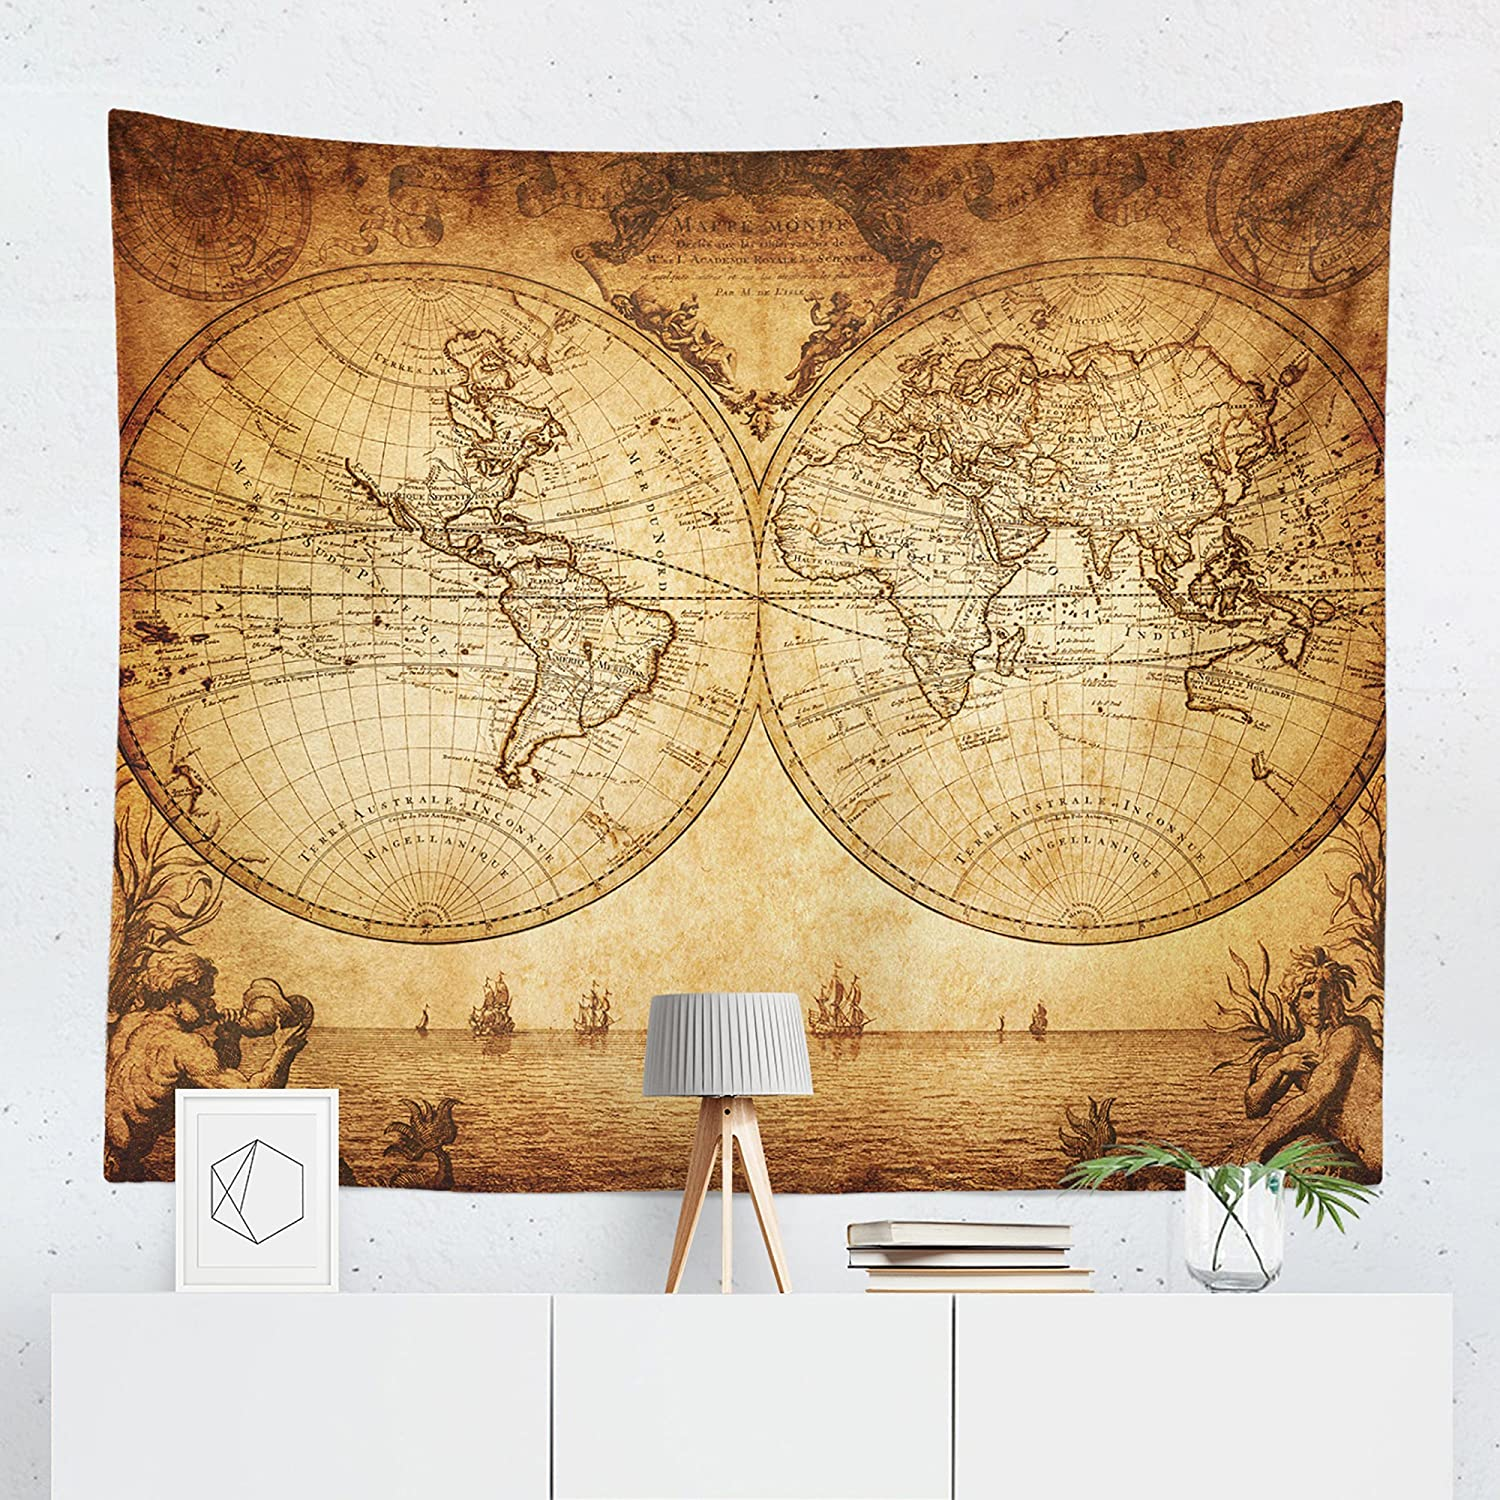 Vinage World Map Tapestry - Maps Global Antique Wall Tapestries Hanging Décor Bedroom Dorm College Living Room Home Art Print Decoration Decorative - Printed in the USA - Small Medium Large Sizes